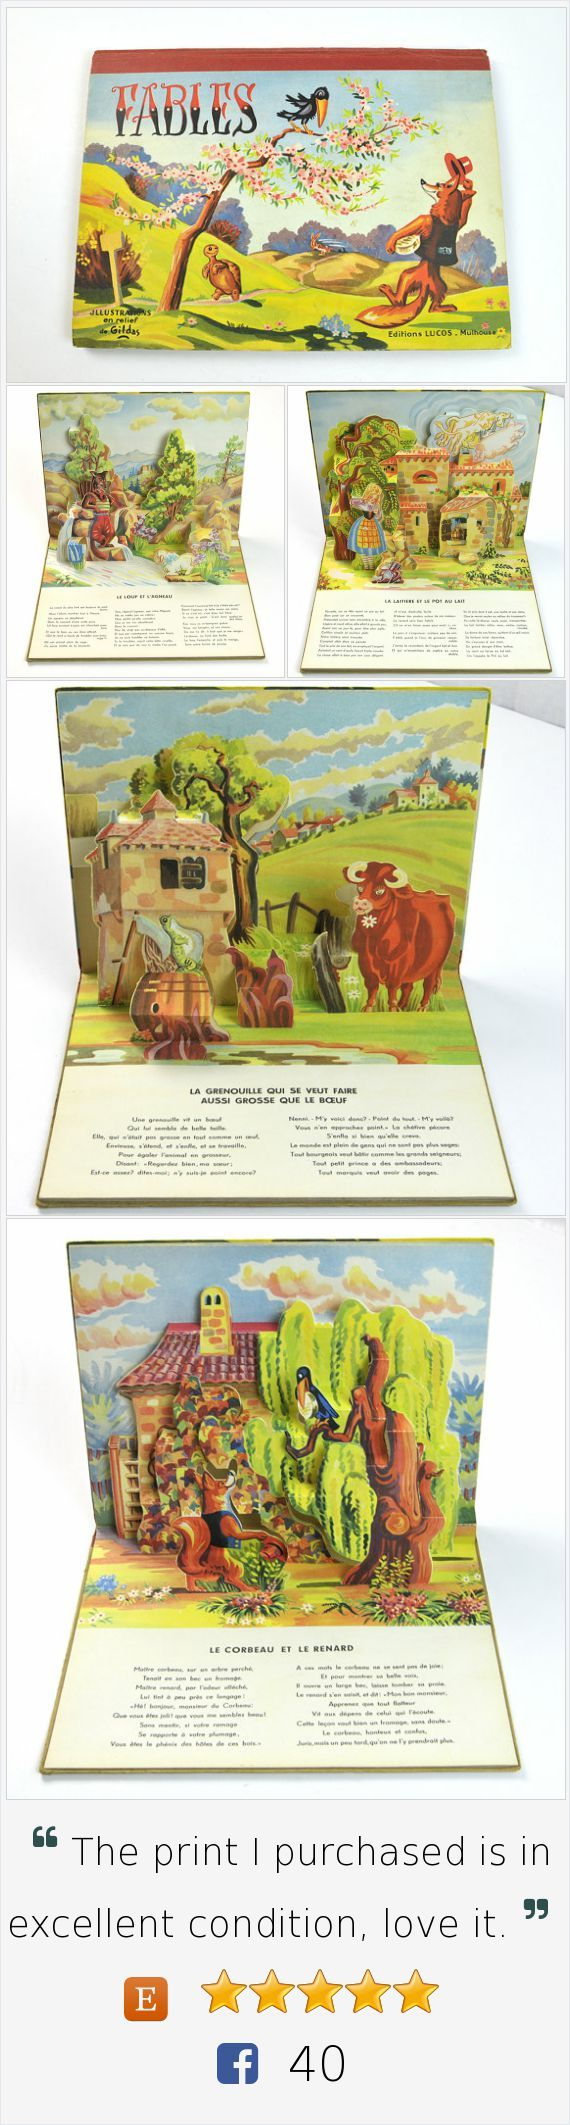 Vintage French Pop-Up Book, Fables, Illustrations by Gildas, Lucos, Mullhouse, 1950s, Midcentury, Children, Collectible